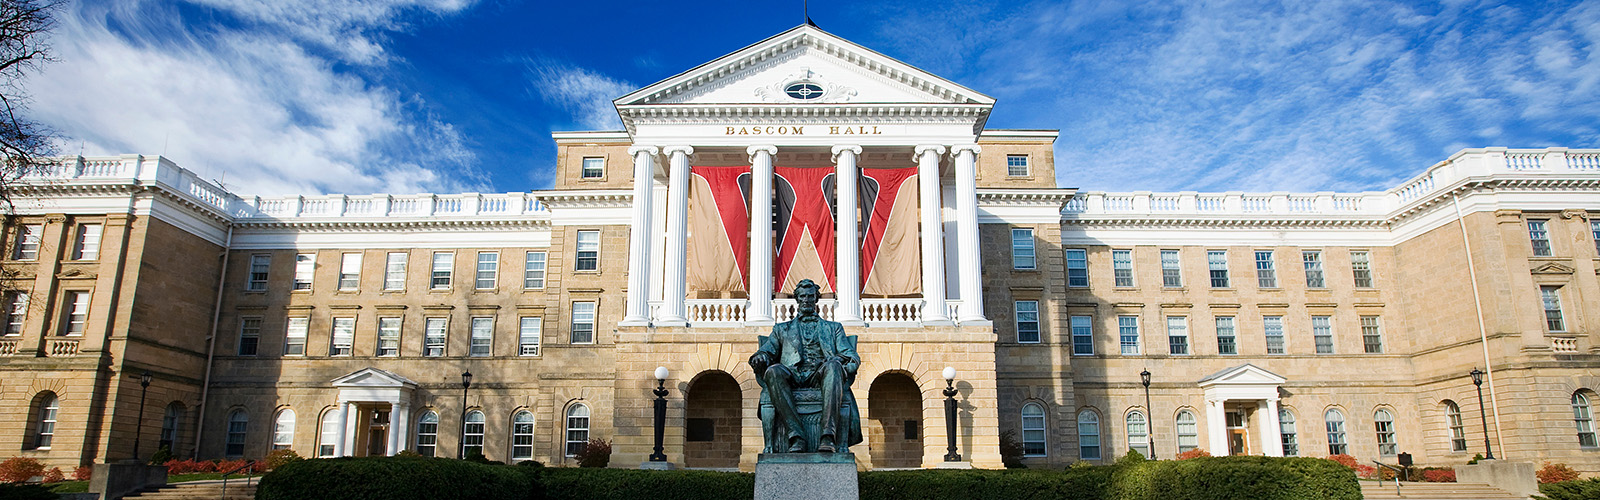 "An iconic ""W"" banner hangs between the columns of Bascom Hall at the University of Wisconsin-Madison on Nov. 10, 2007."